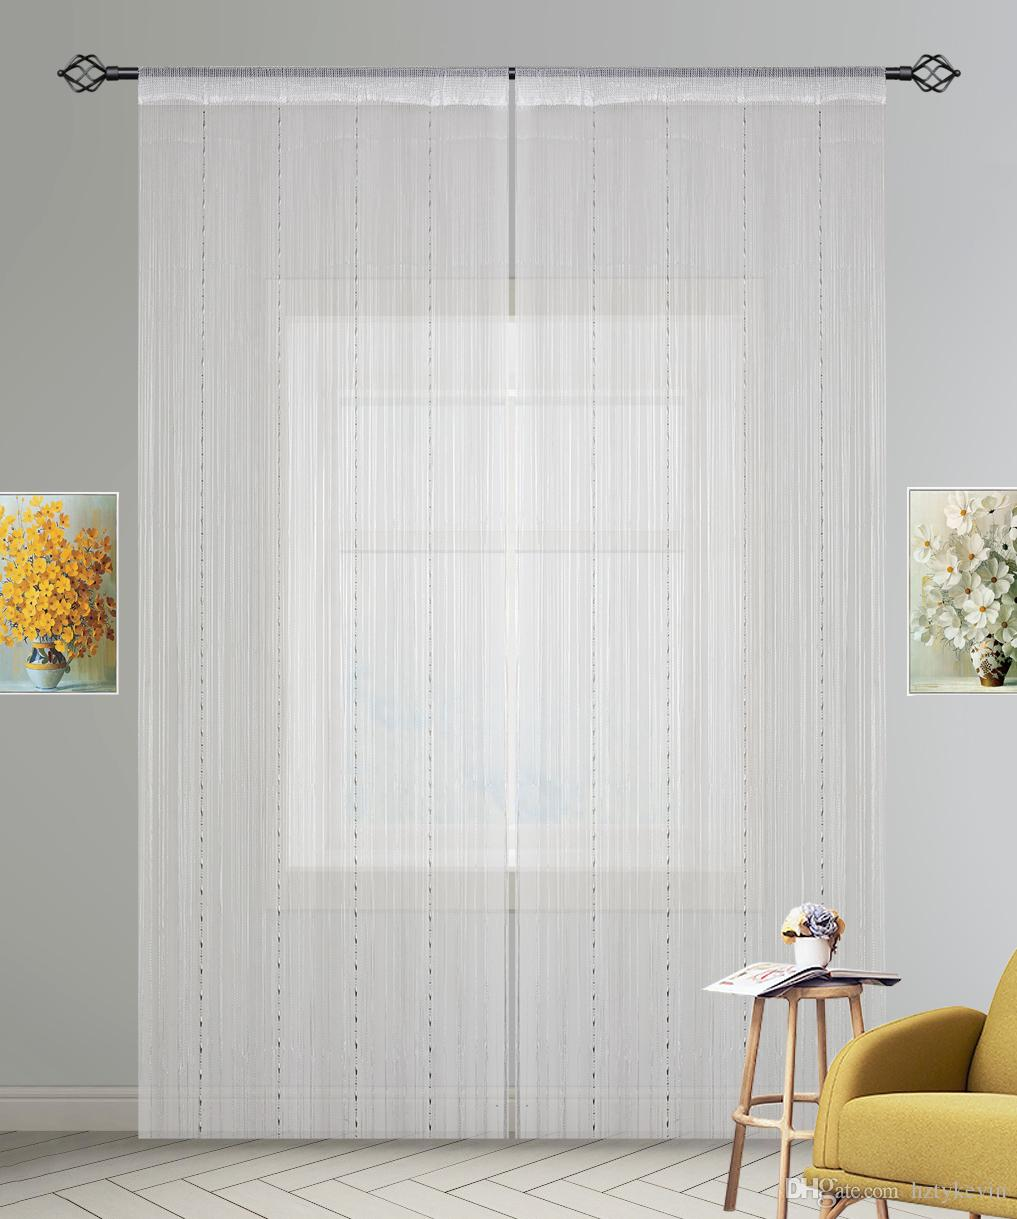 panel beauty decor door beads r itm tassel plastic string crystal divider room curtain curtains window